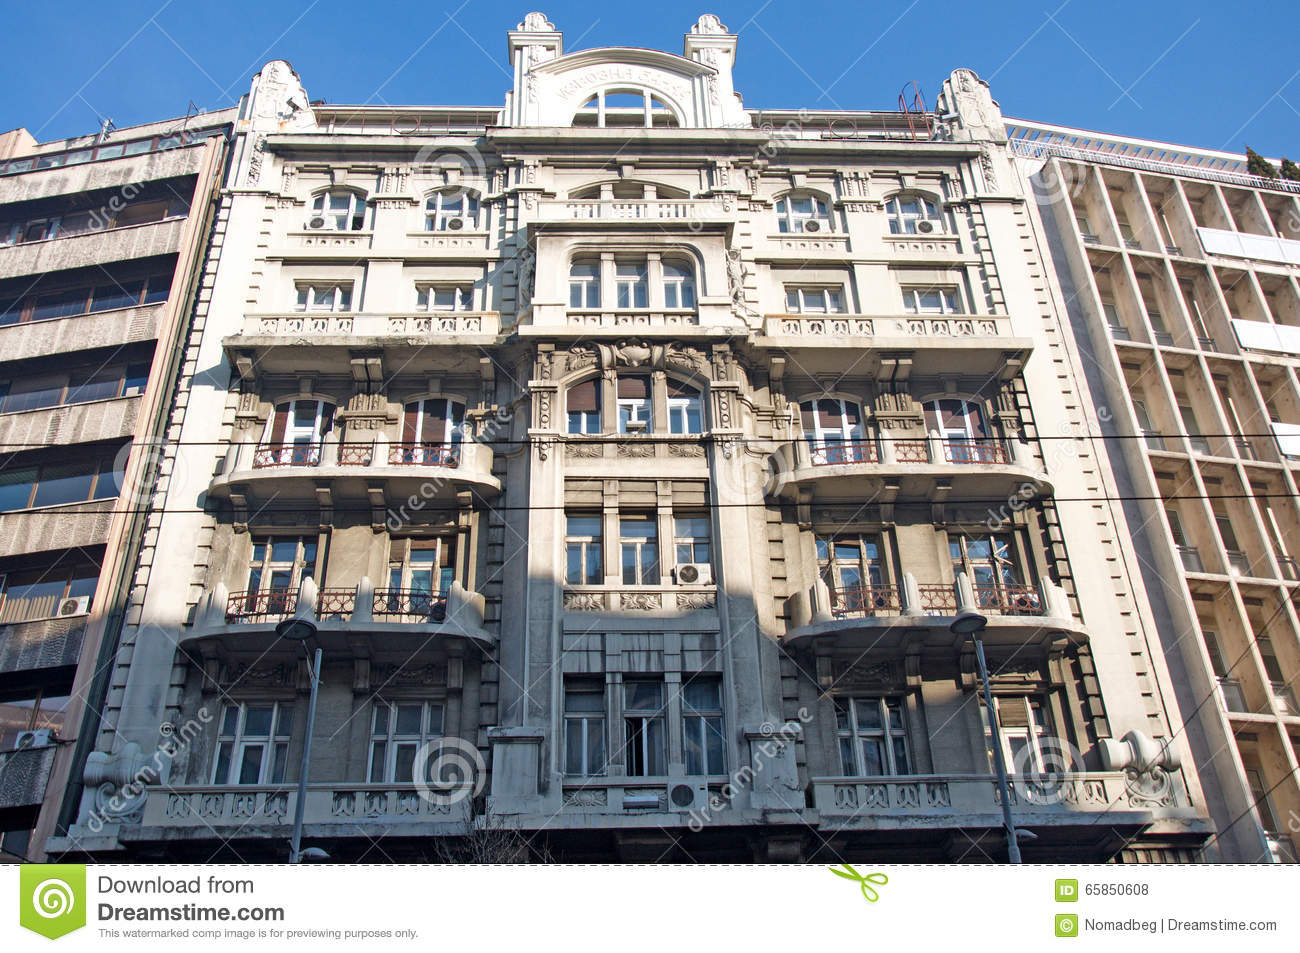 Landscape of beautiful and luxury clasic palace in Belgrade